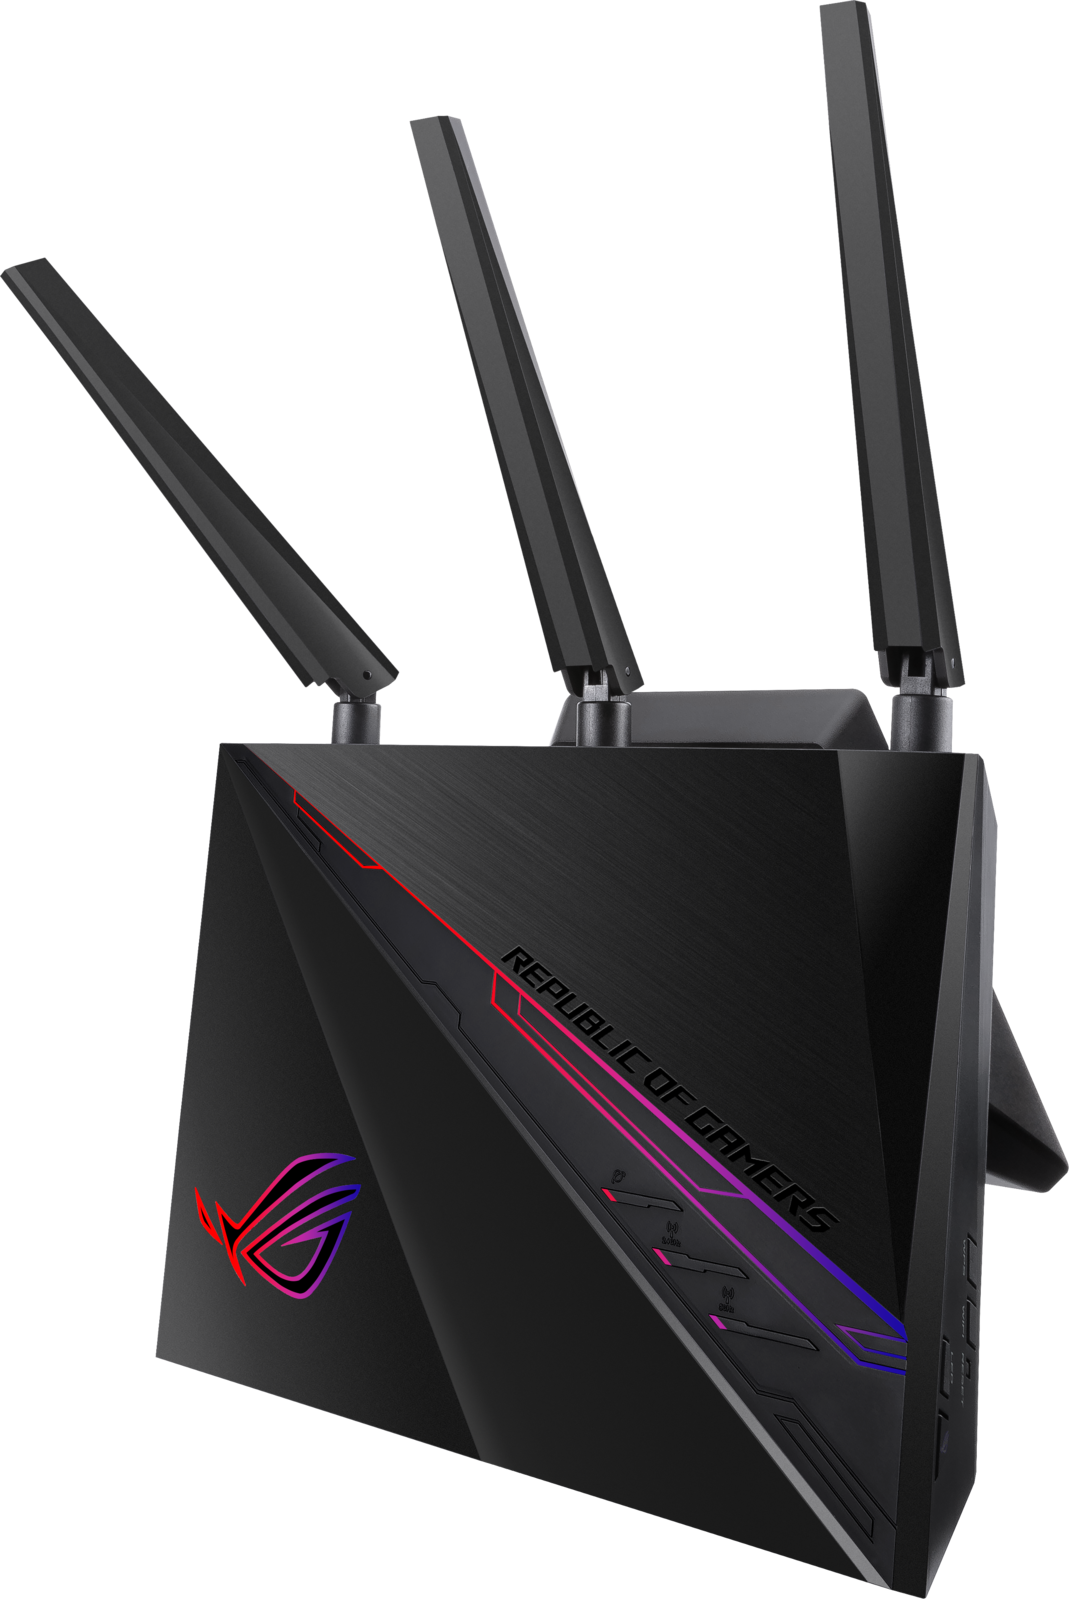 ASUS ROG Rapture GT-AC2900 Dual Band Wi-Fi Router image